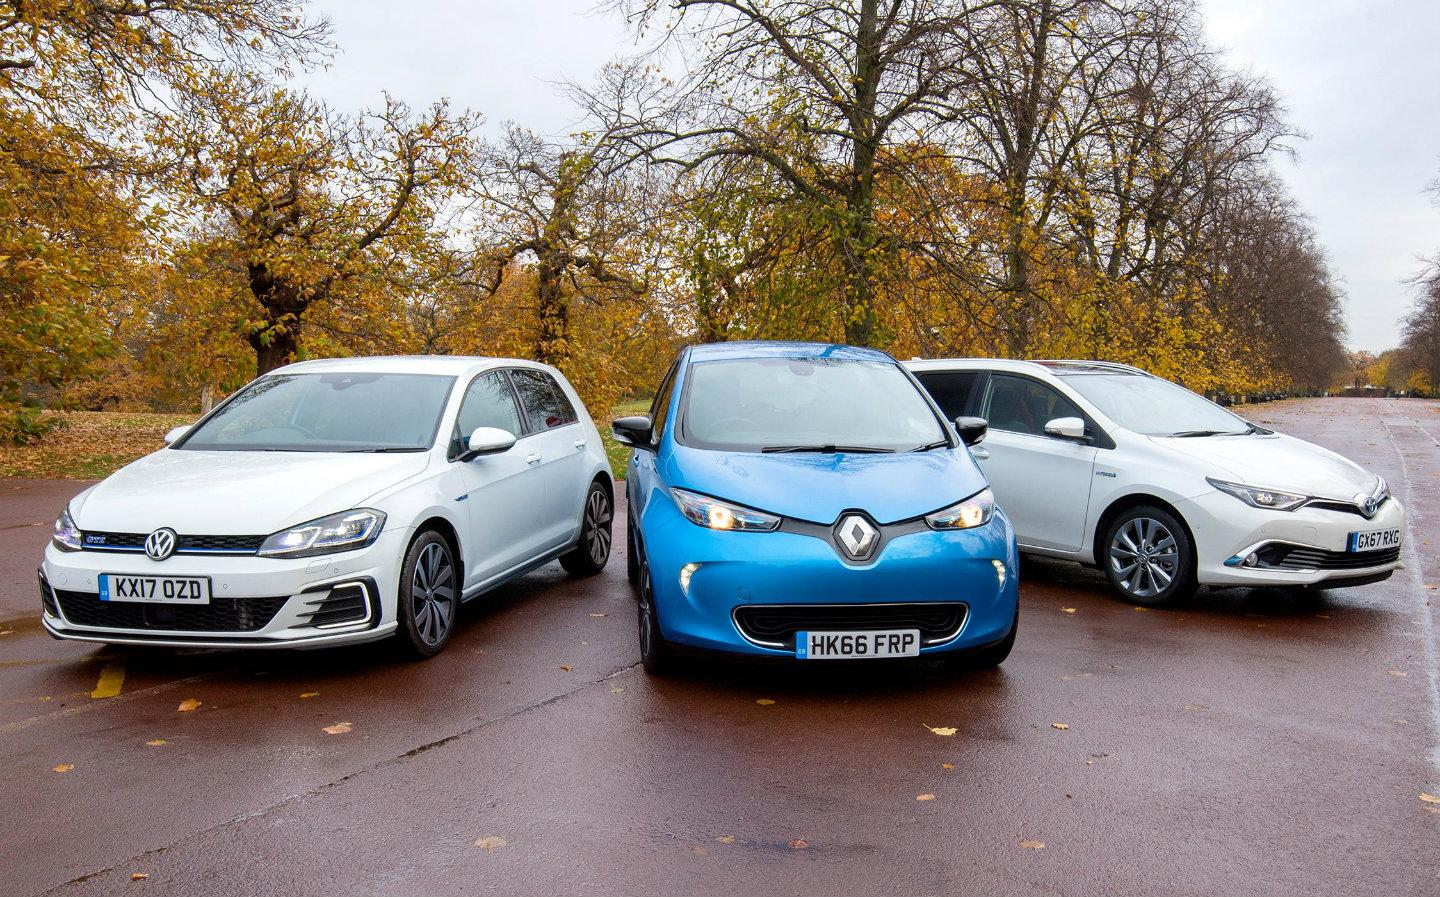 Hybrid Vs Plug In Vehicles Benefits And Downsides Car From An